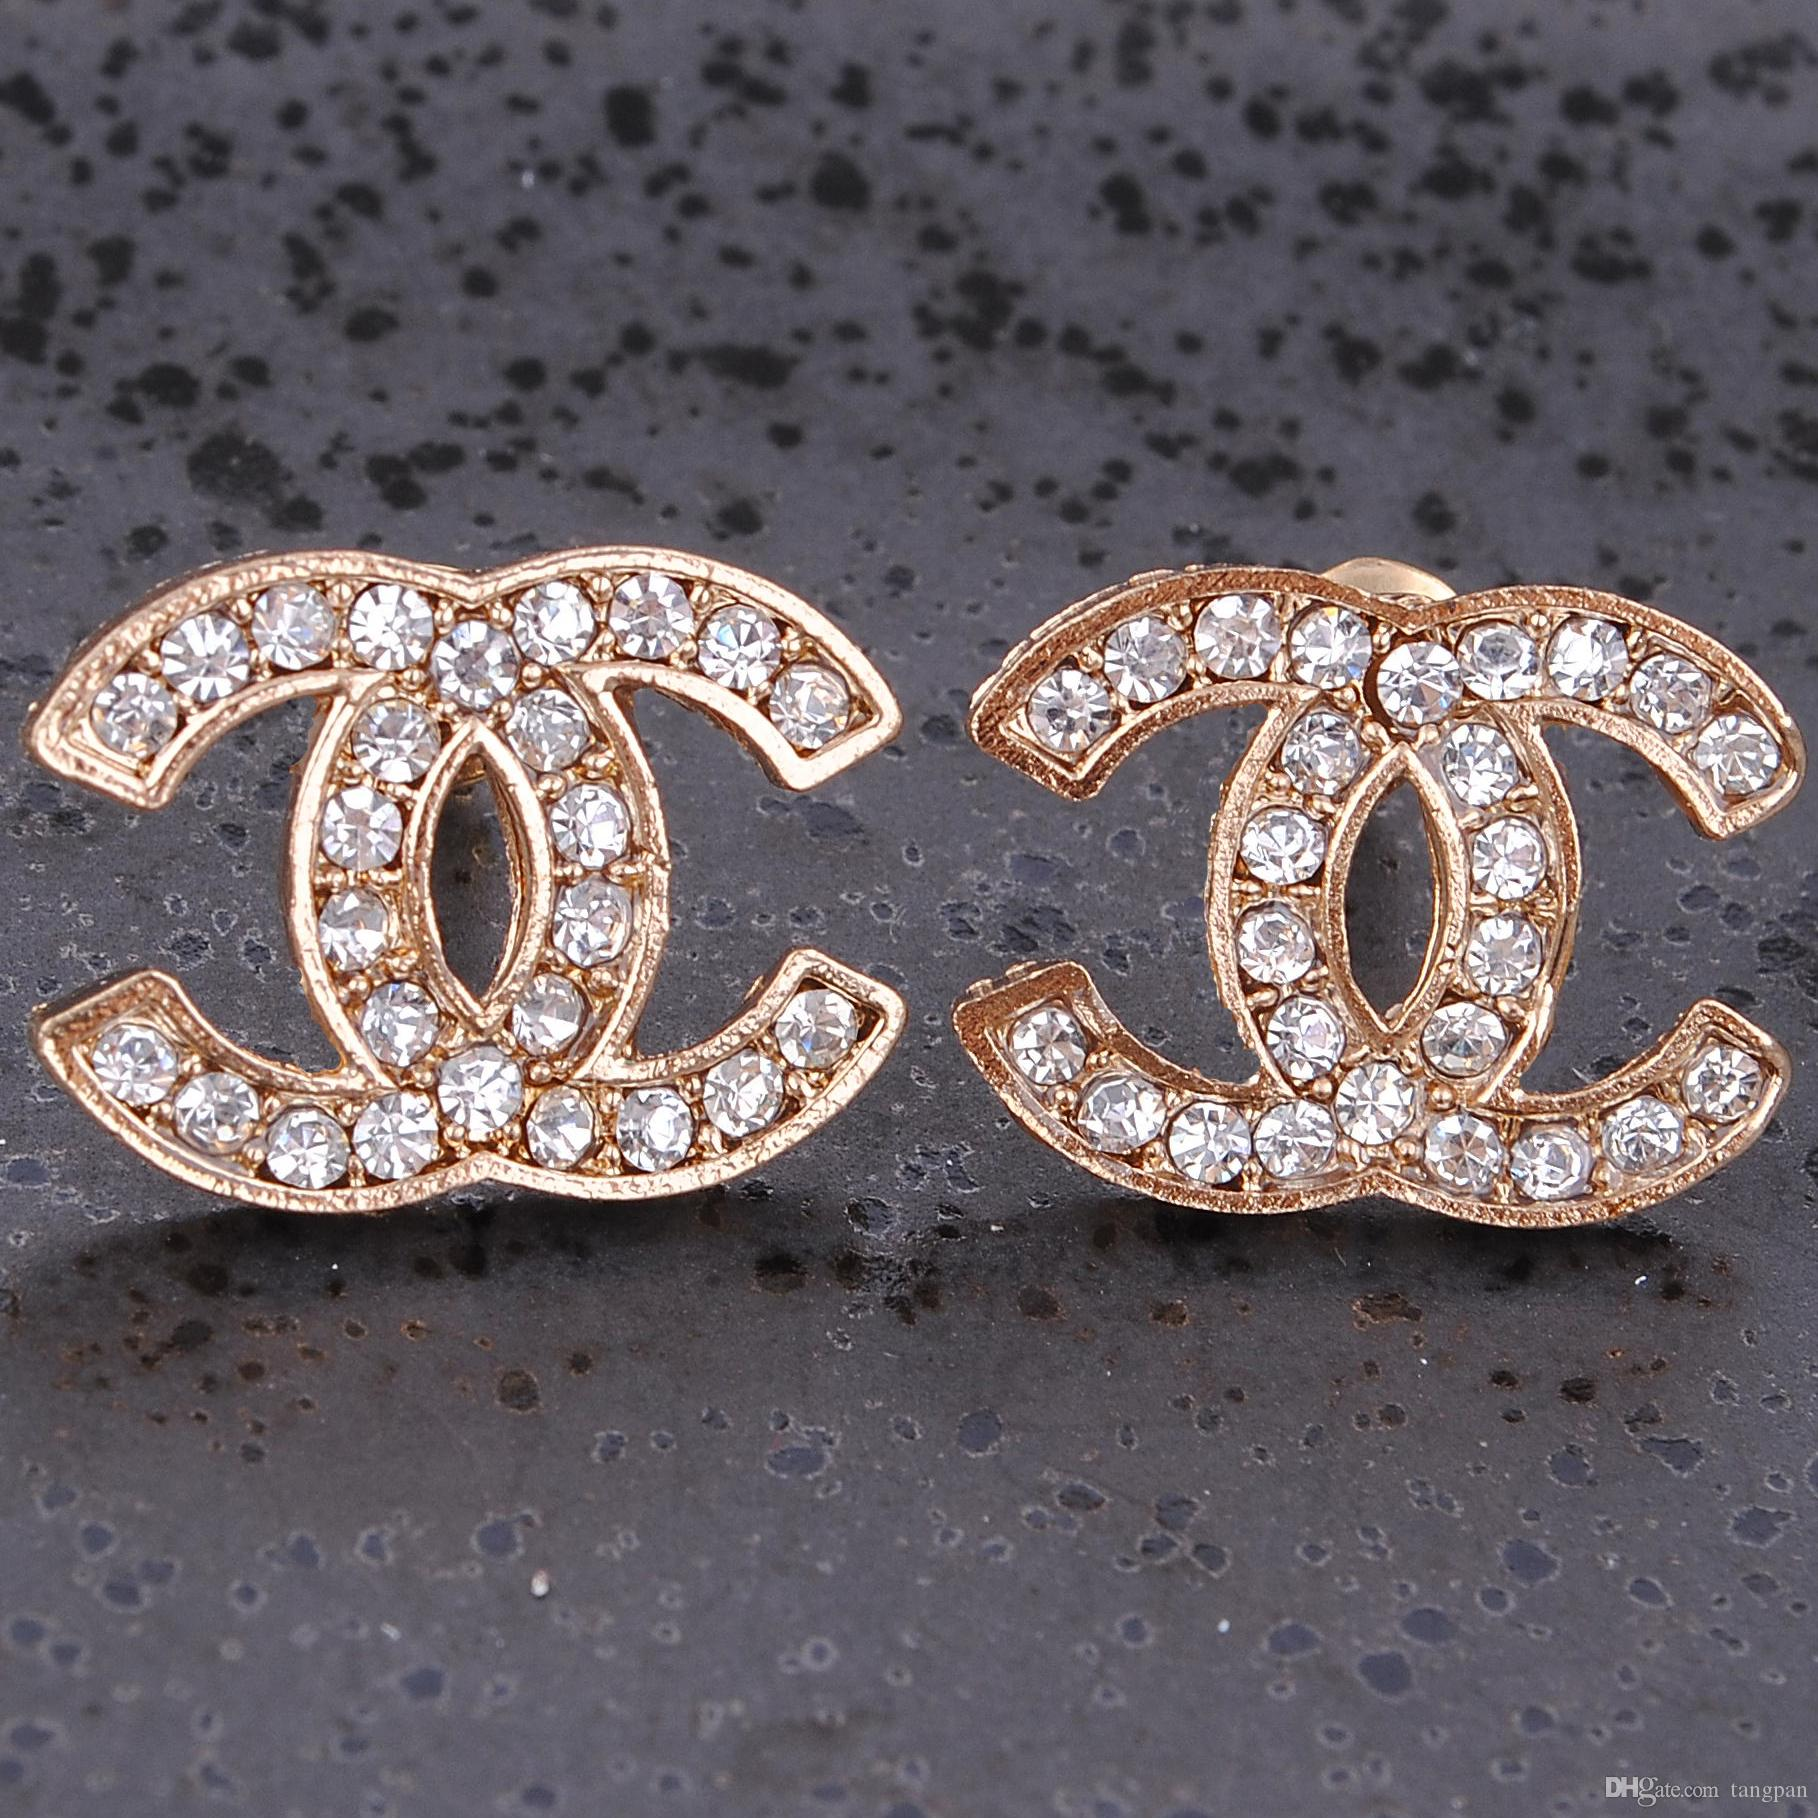 studded with and design cz earrings fashionable gold designer pin polish synthetic zircon stud stones